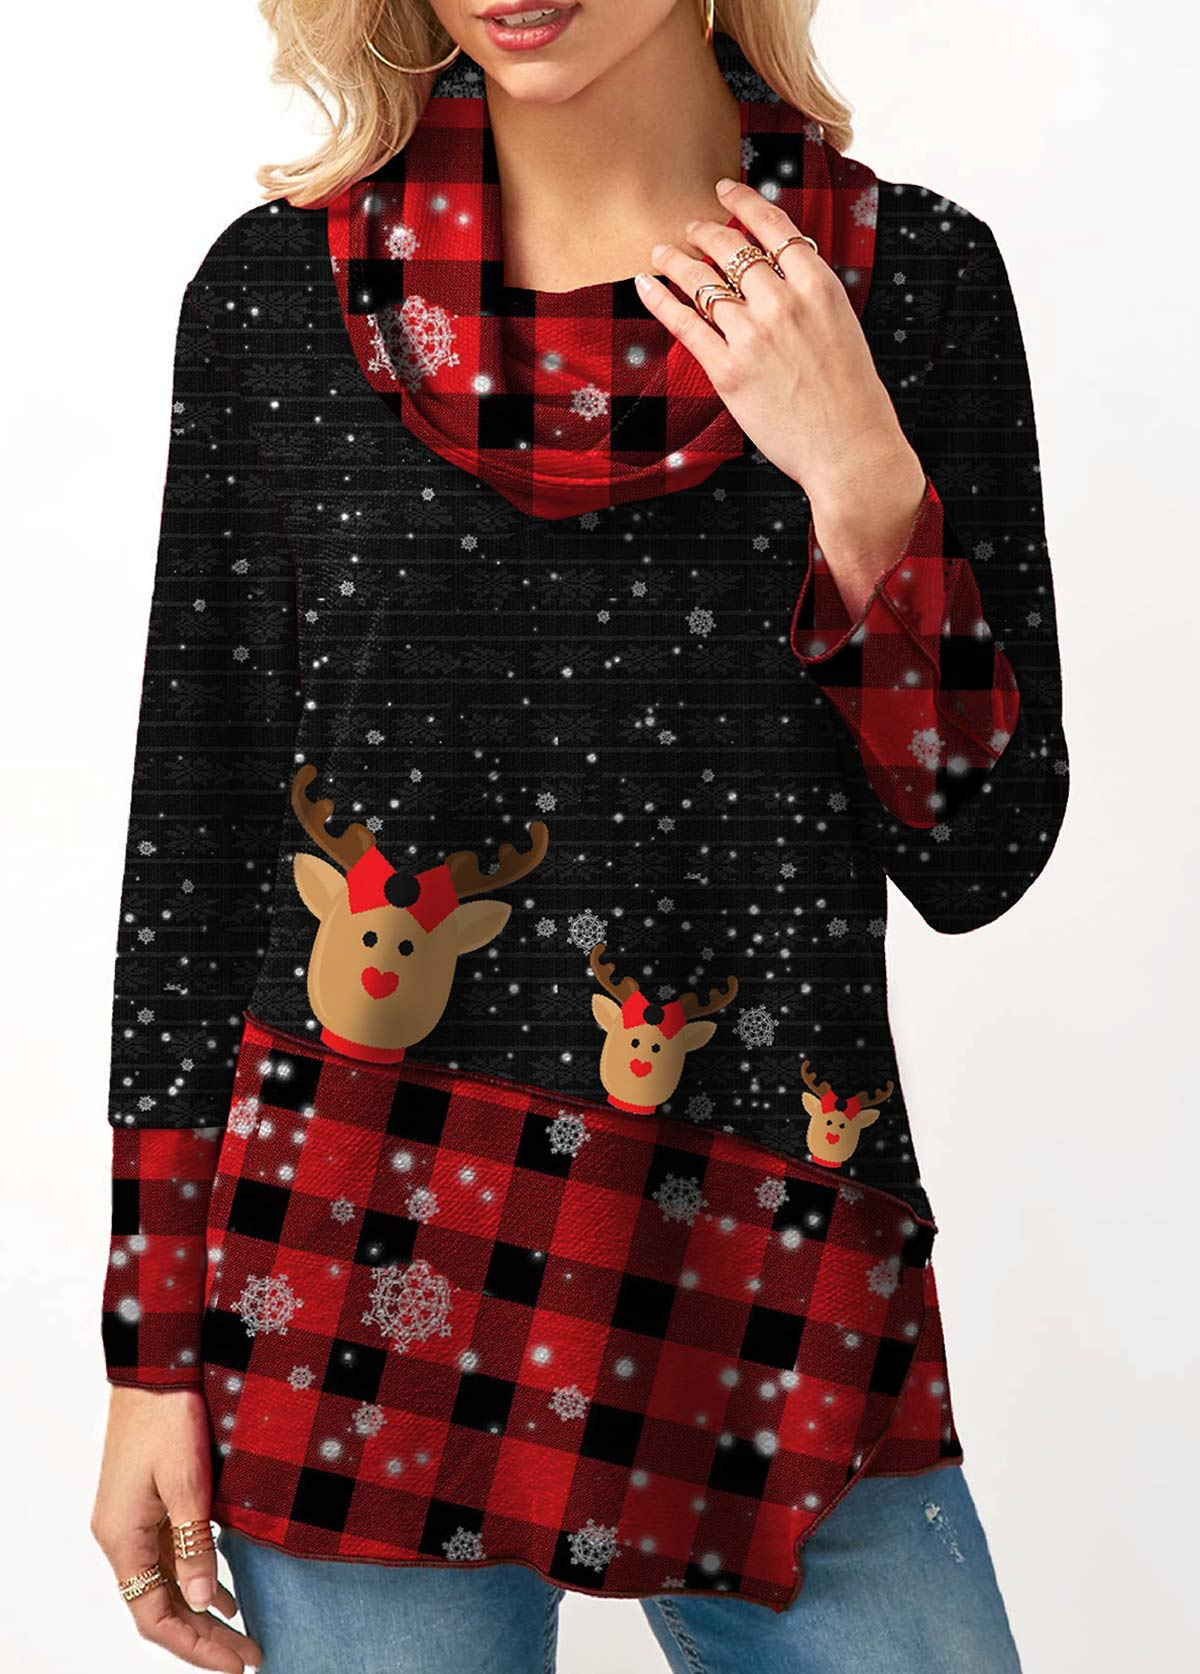 Cowl Neck Plaid Print Long Sleeve Christmas Sweatshirt